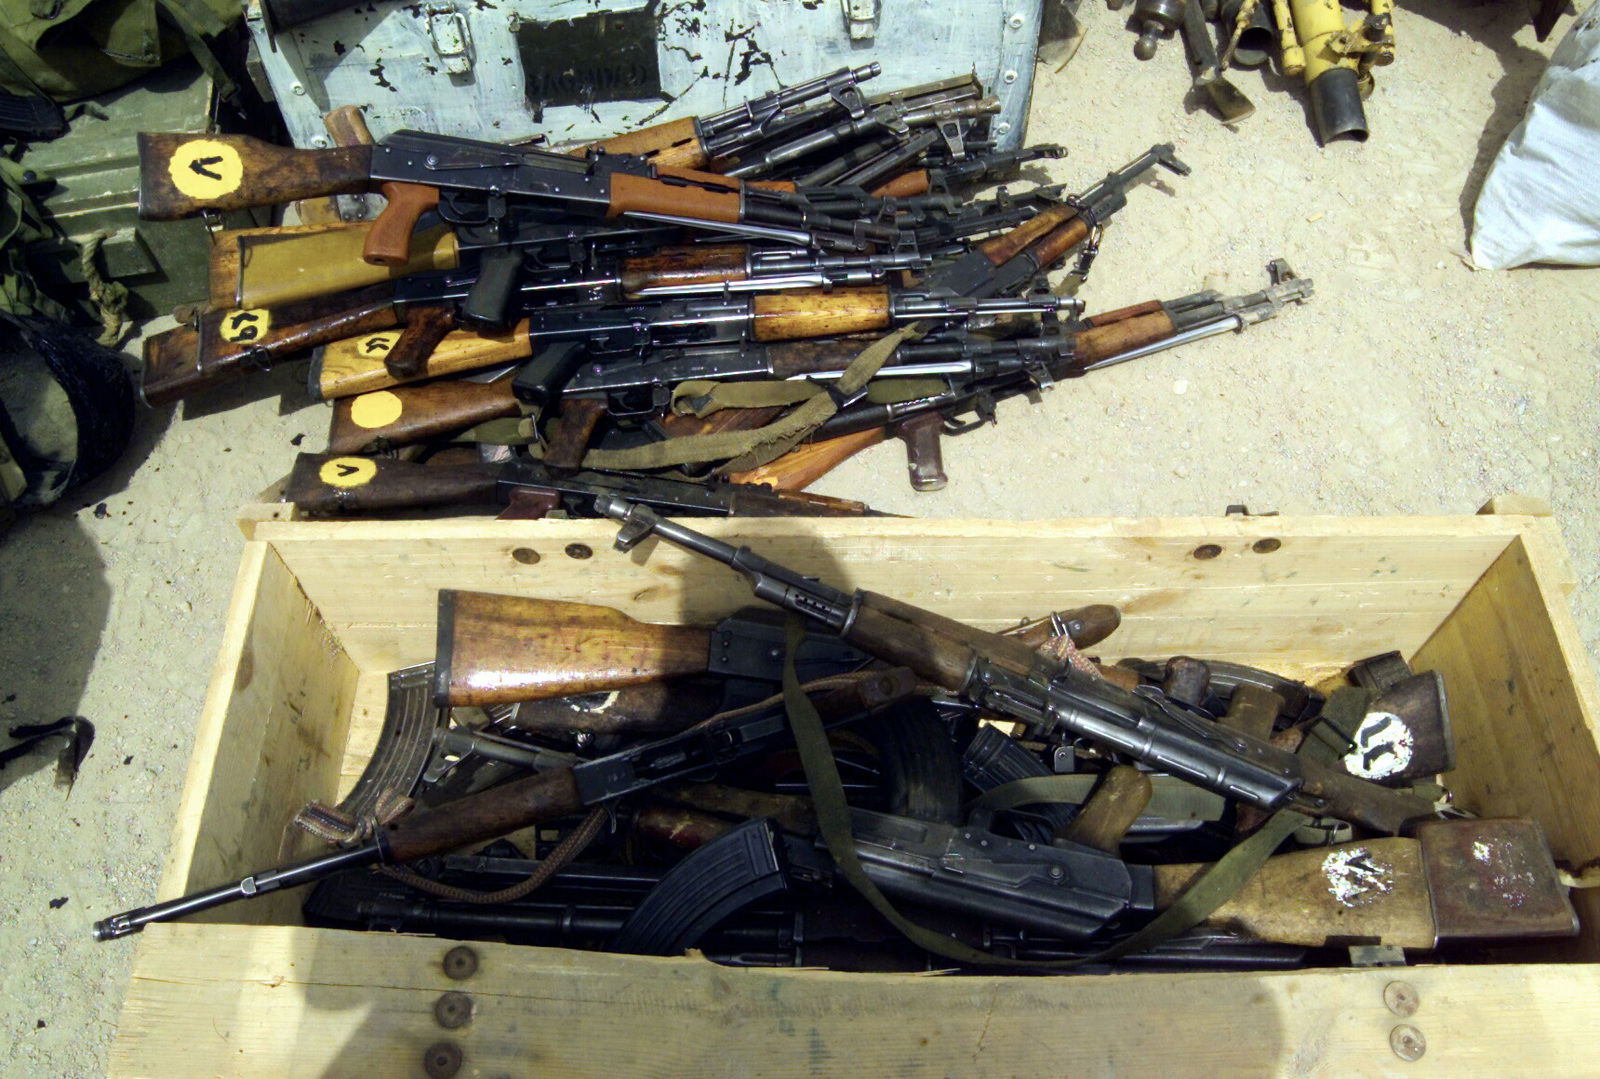 a-weapons-cache-of-chinese-copies-of-kalashnikov-type-56-assault-rifles-found-0bc9c5-1600.jpg